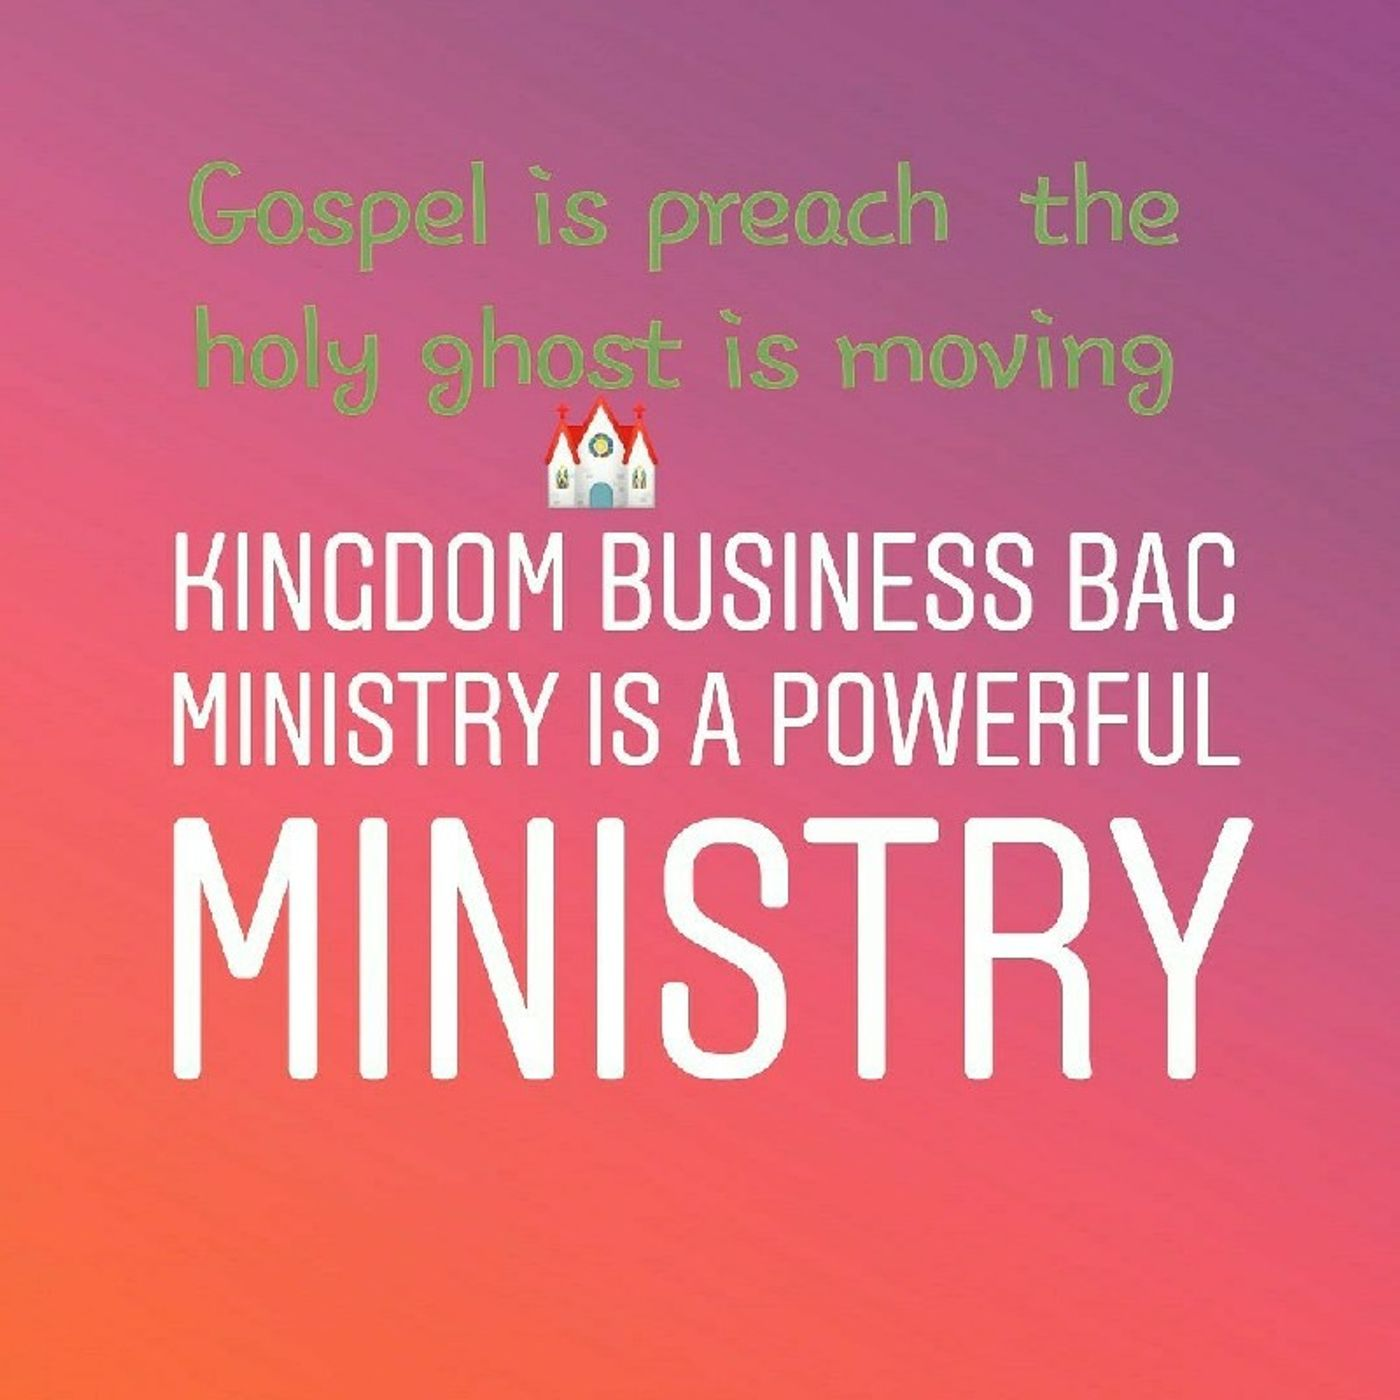 Episode 118 - KINGDOM BUSINESS Bac Ministry's show